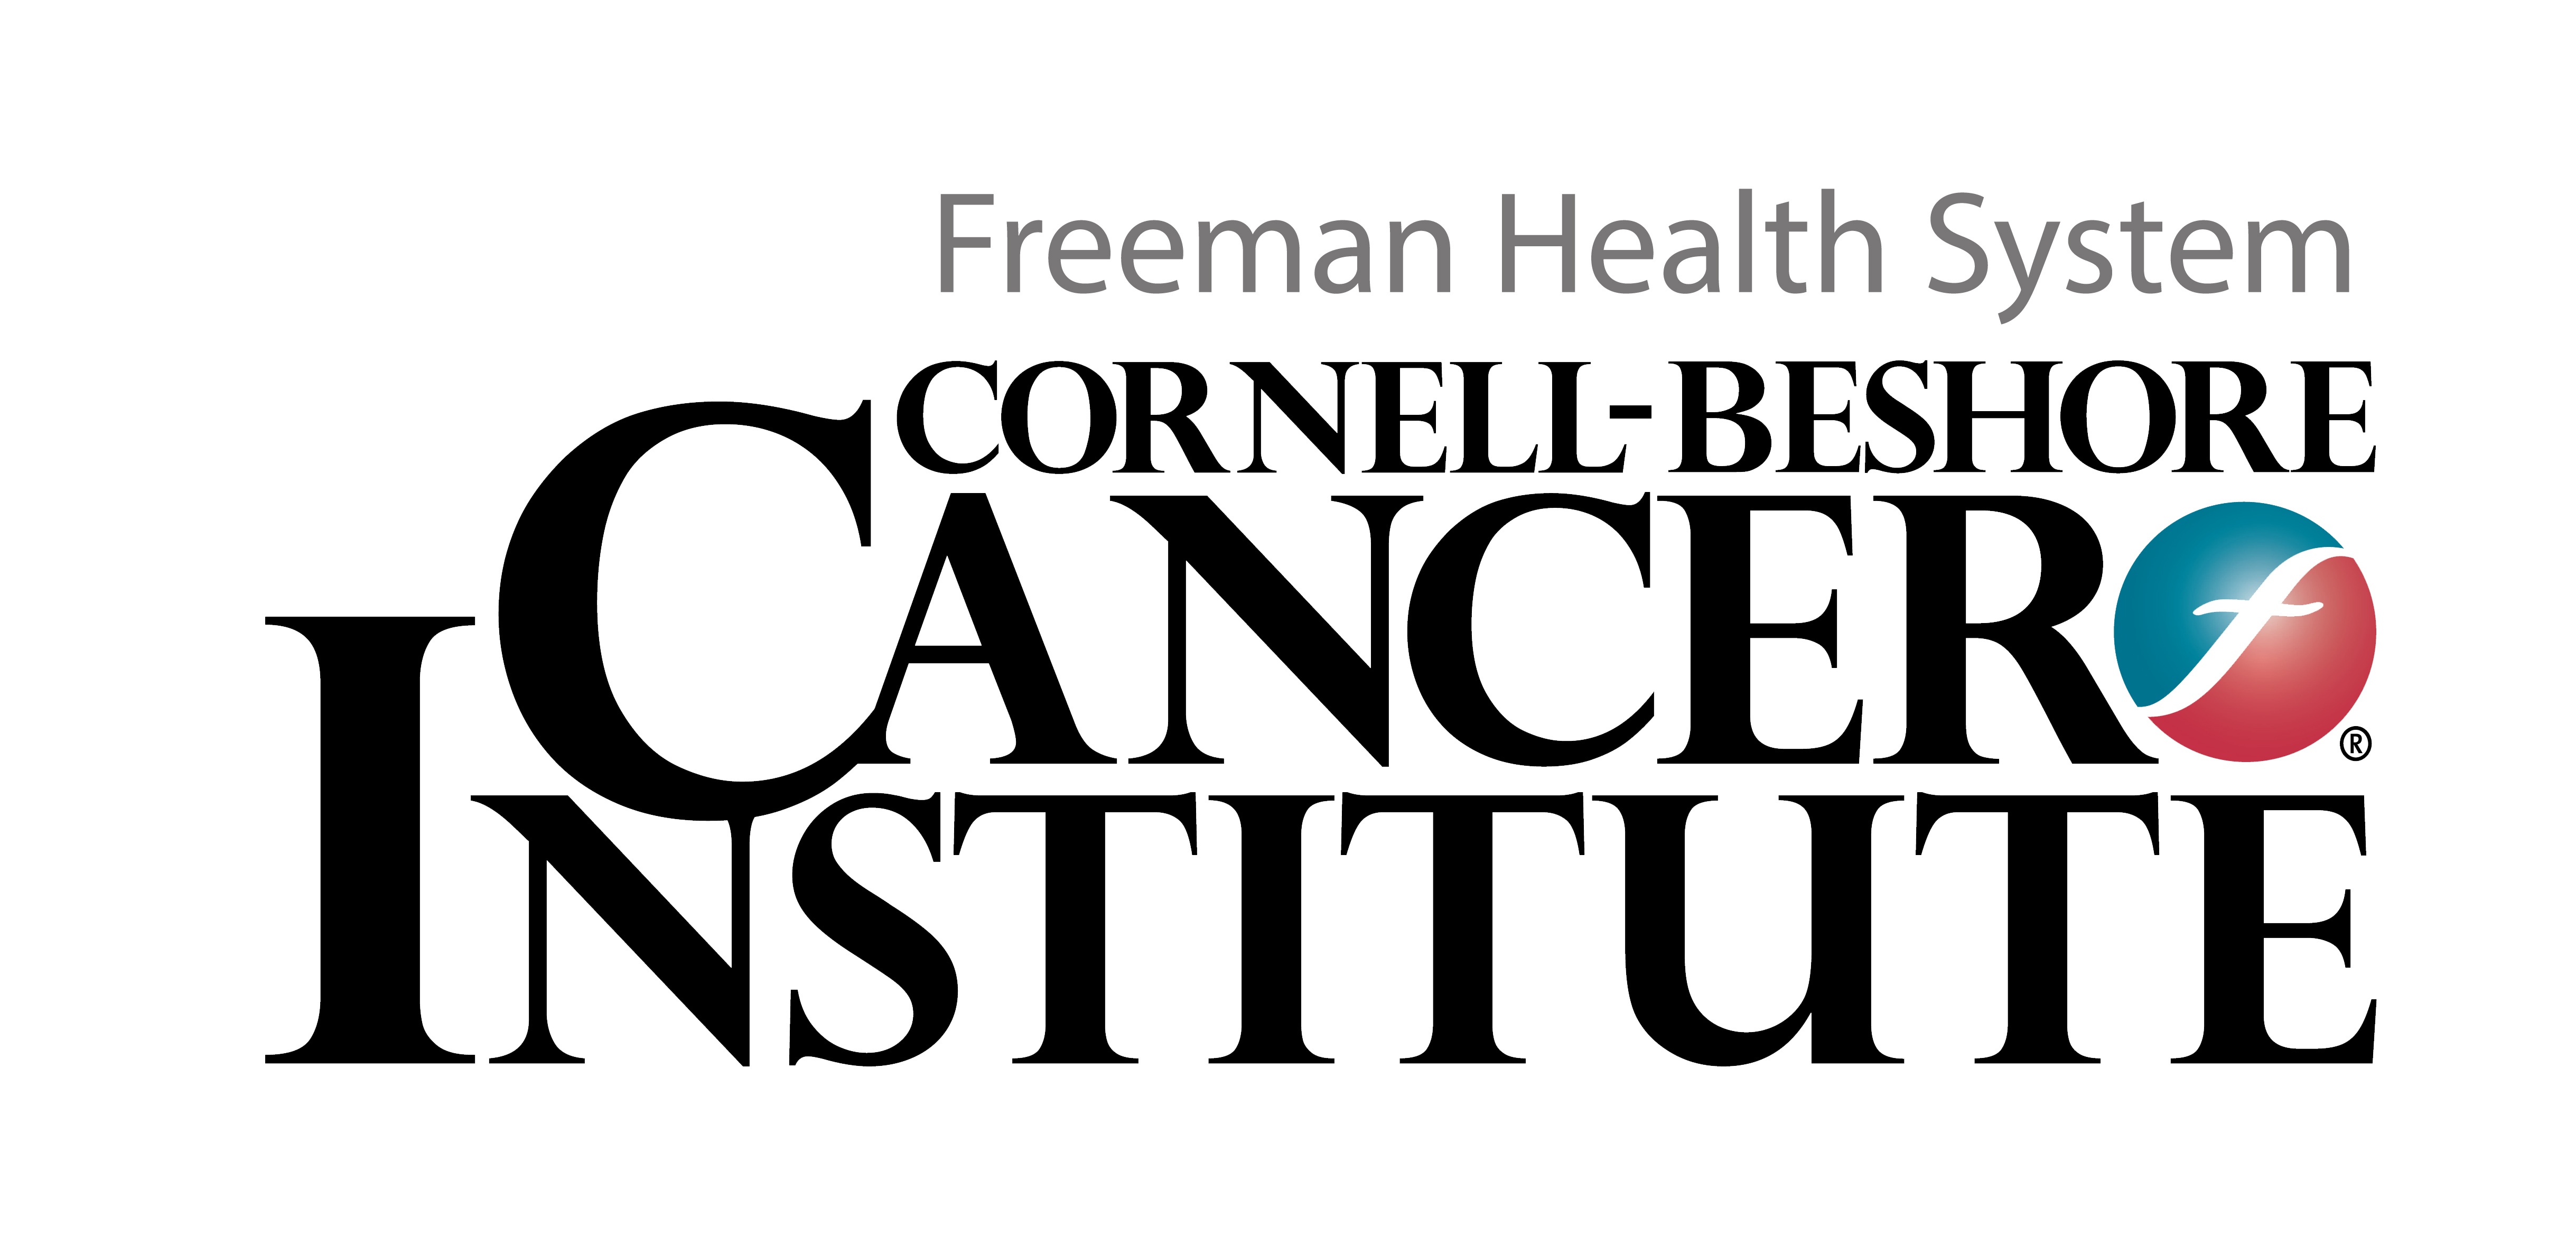 Cancer Institute Logo 2016